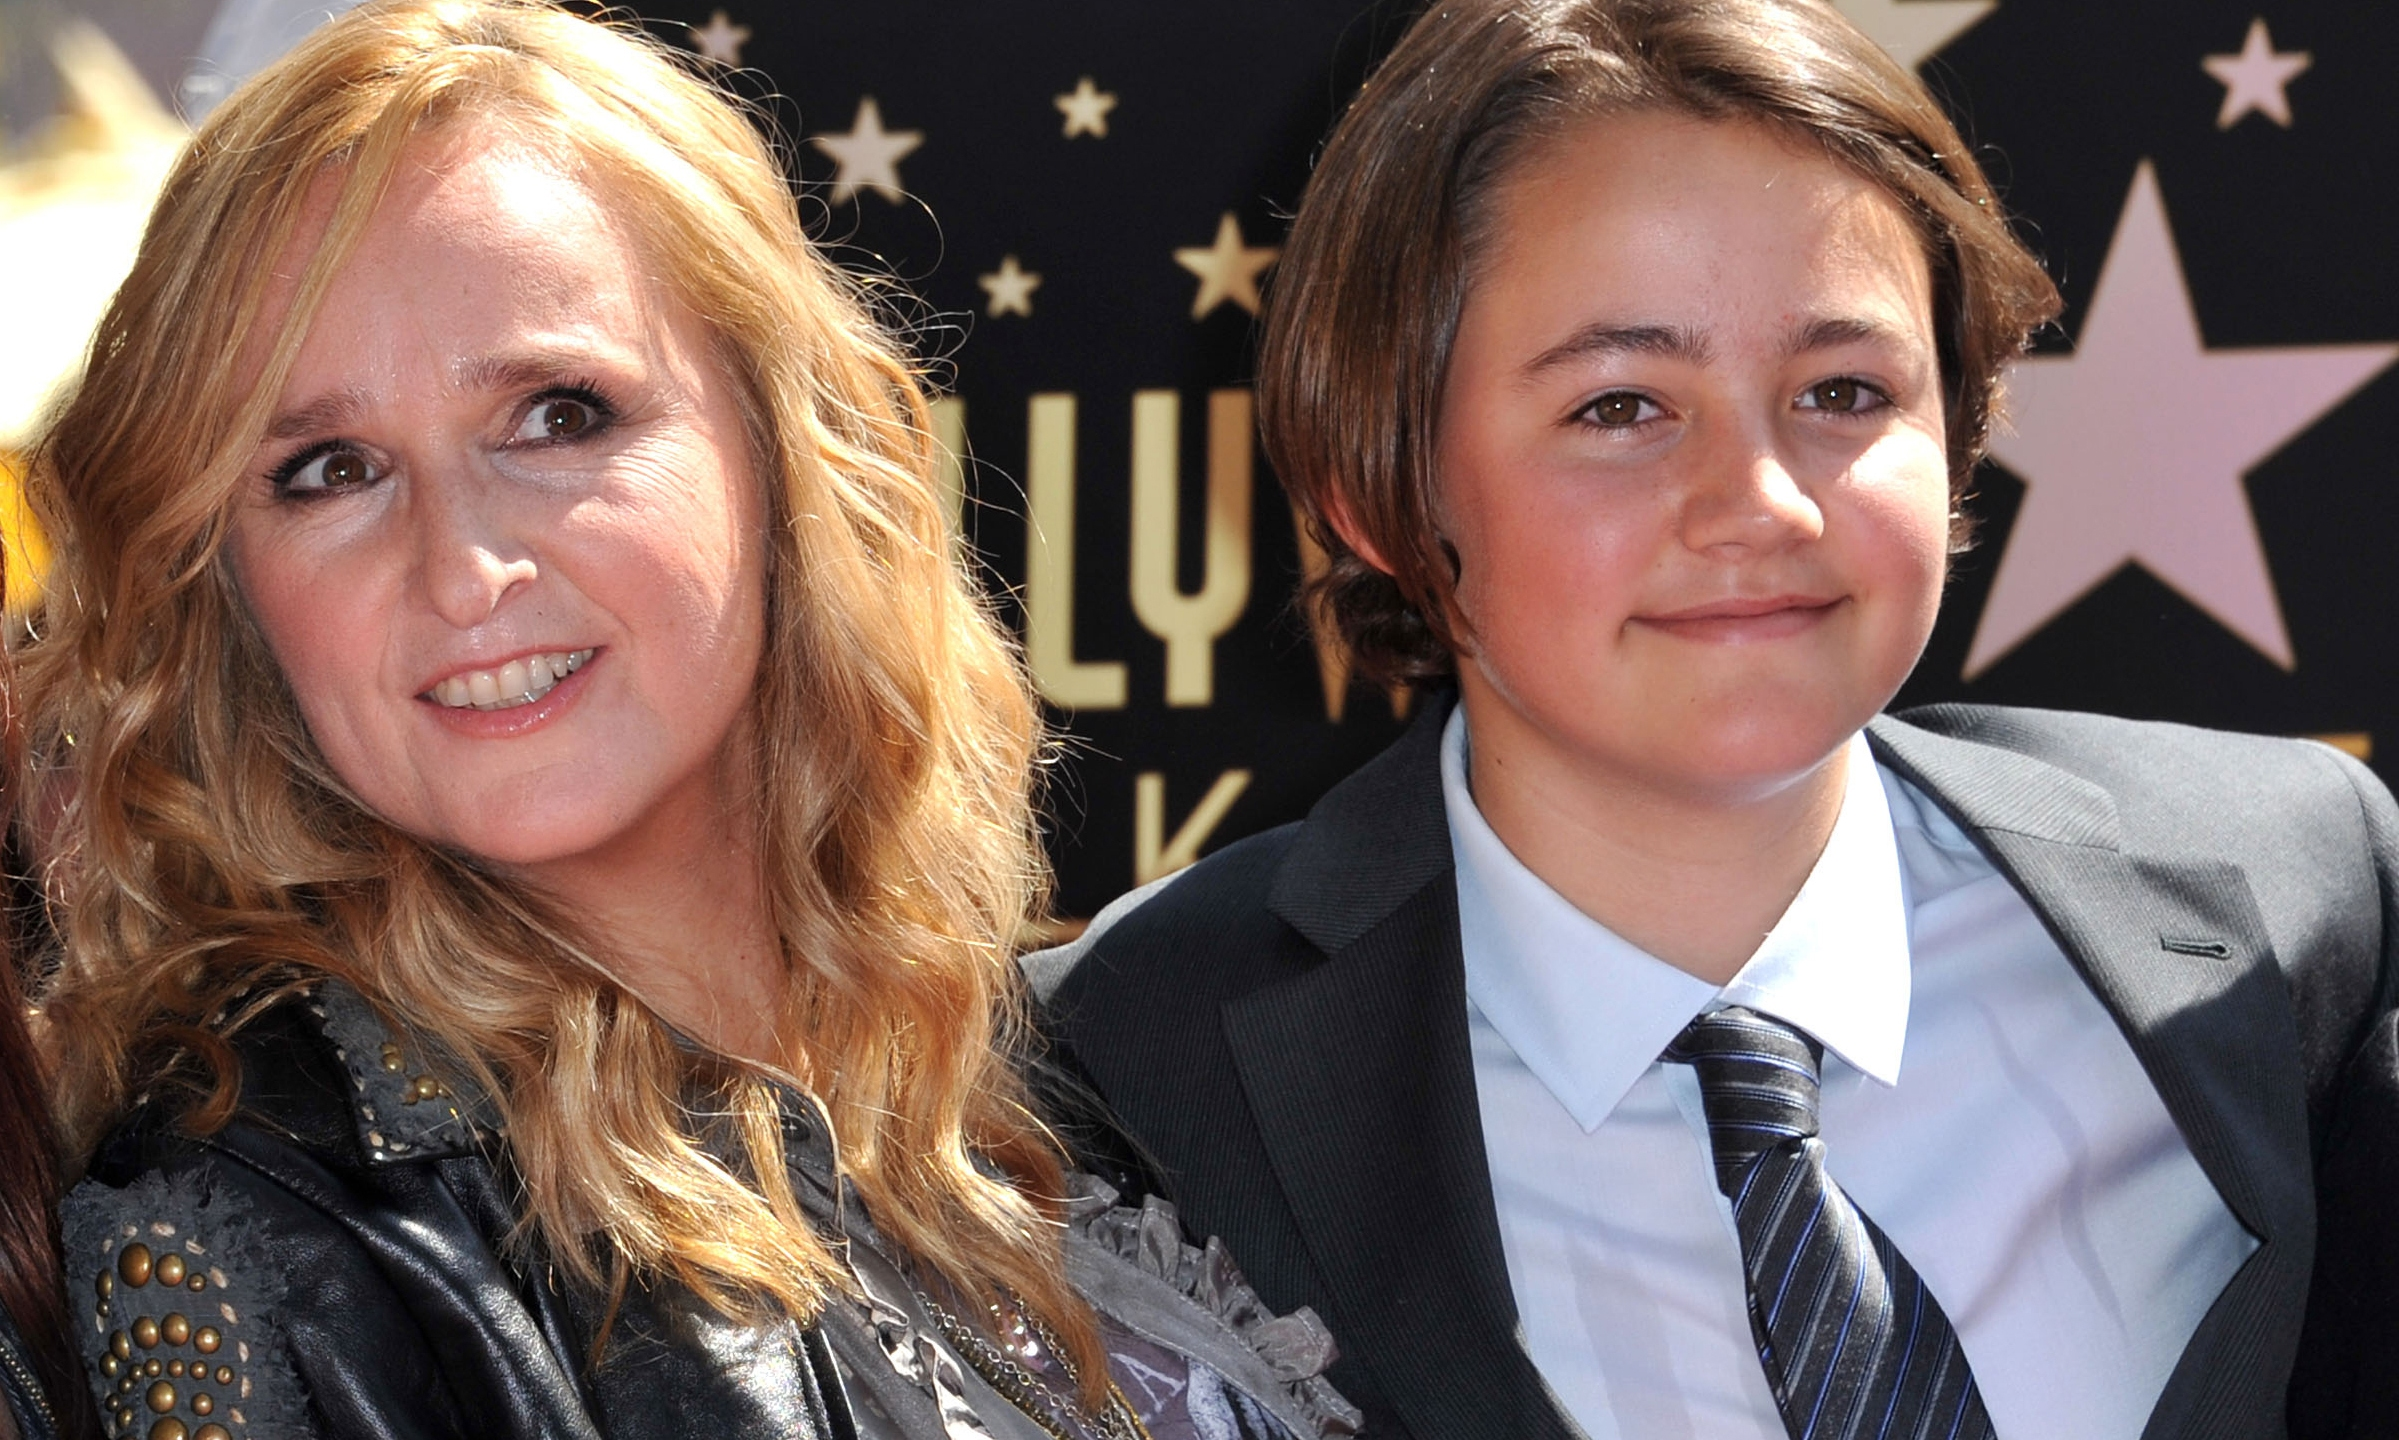 This photo taken on September 27, 2011 shows singer Melissa Etheridge posing with her son Beckett during her Walk of Fame ceremony held at the Hard Rock cafe in Hollywood. (CHRIS DELMAS/AFP via Getty Images)